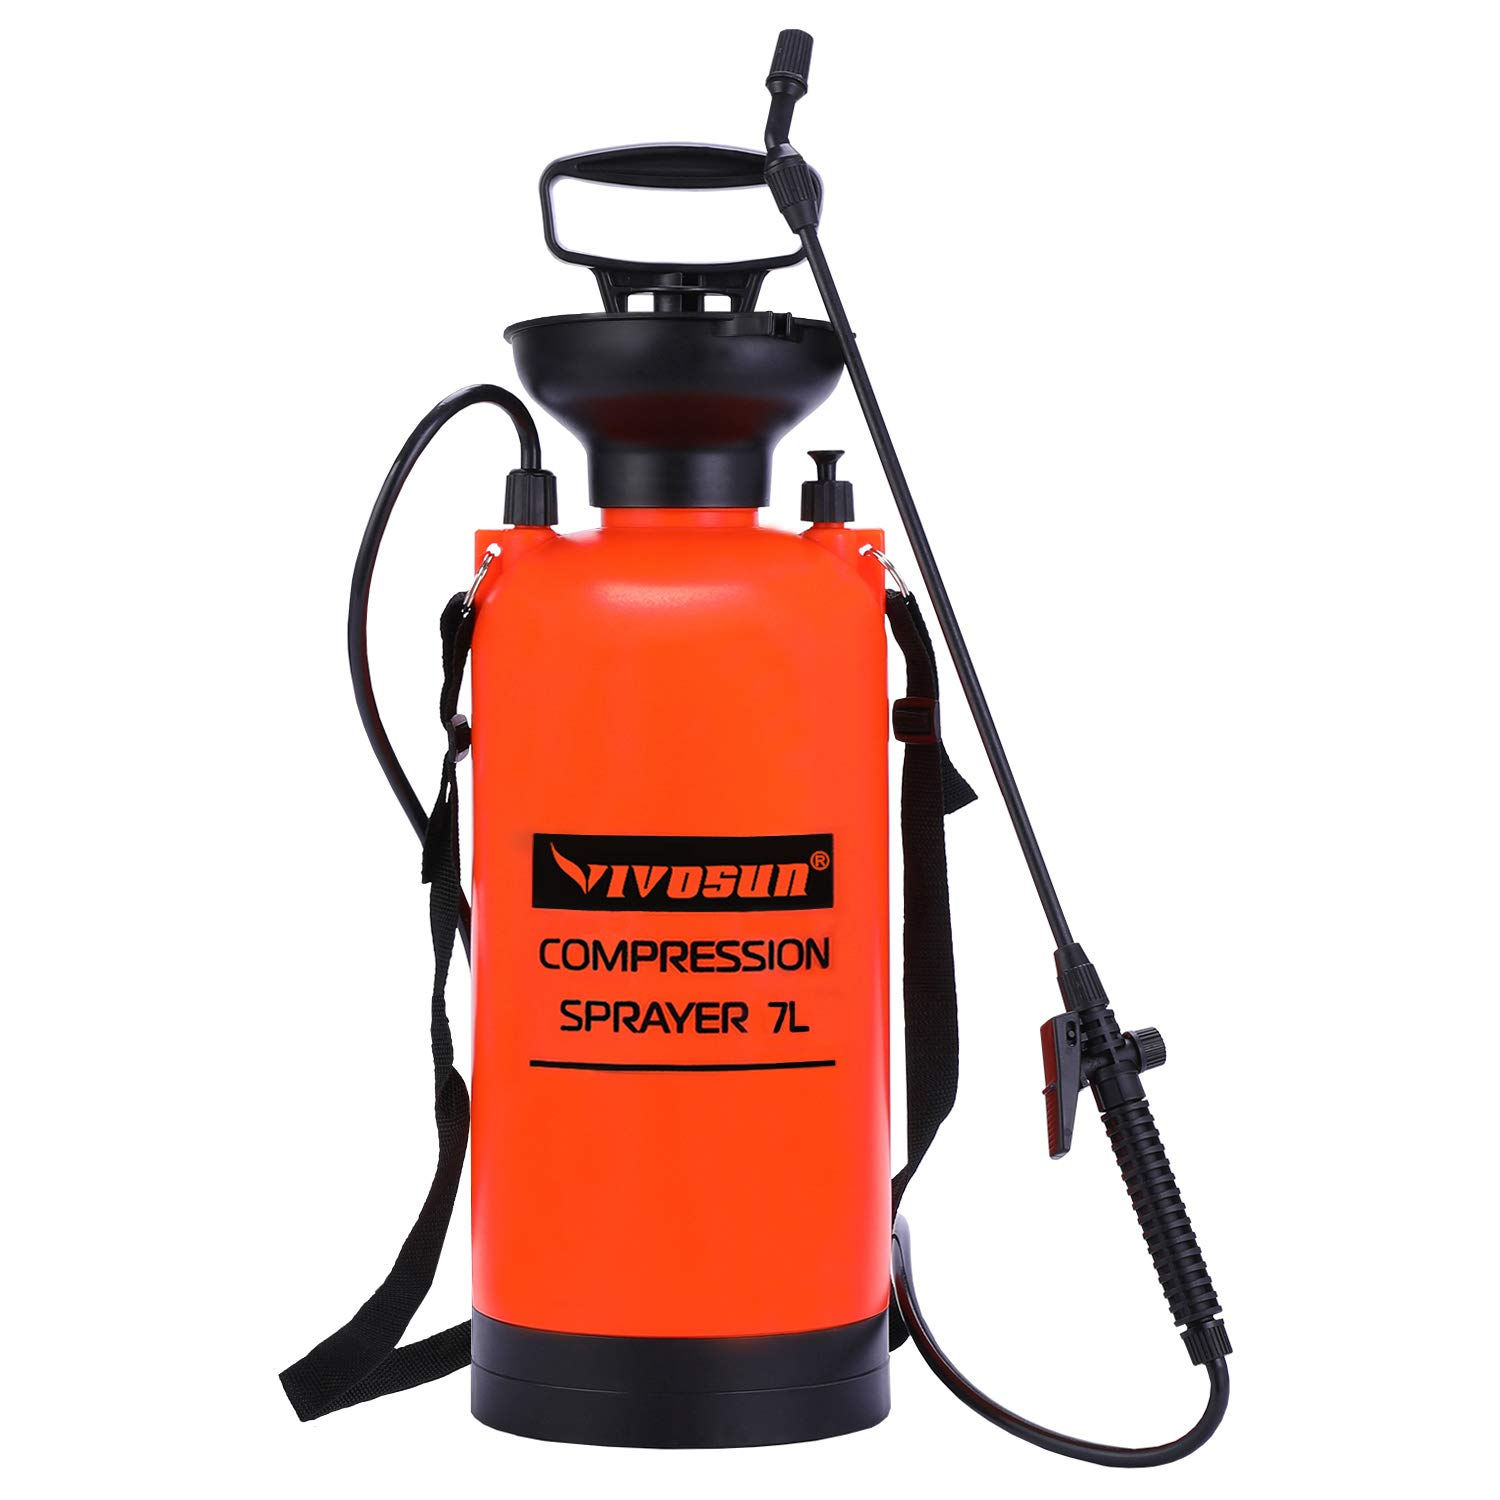 VIVOSUN 1.85 Gallon Lawn and Garden Pump Pressure Sprayer with Pressure Relief Valve, Adjustable Shoulder Strap